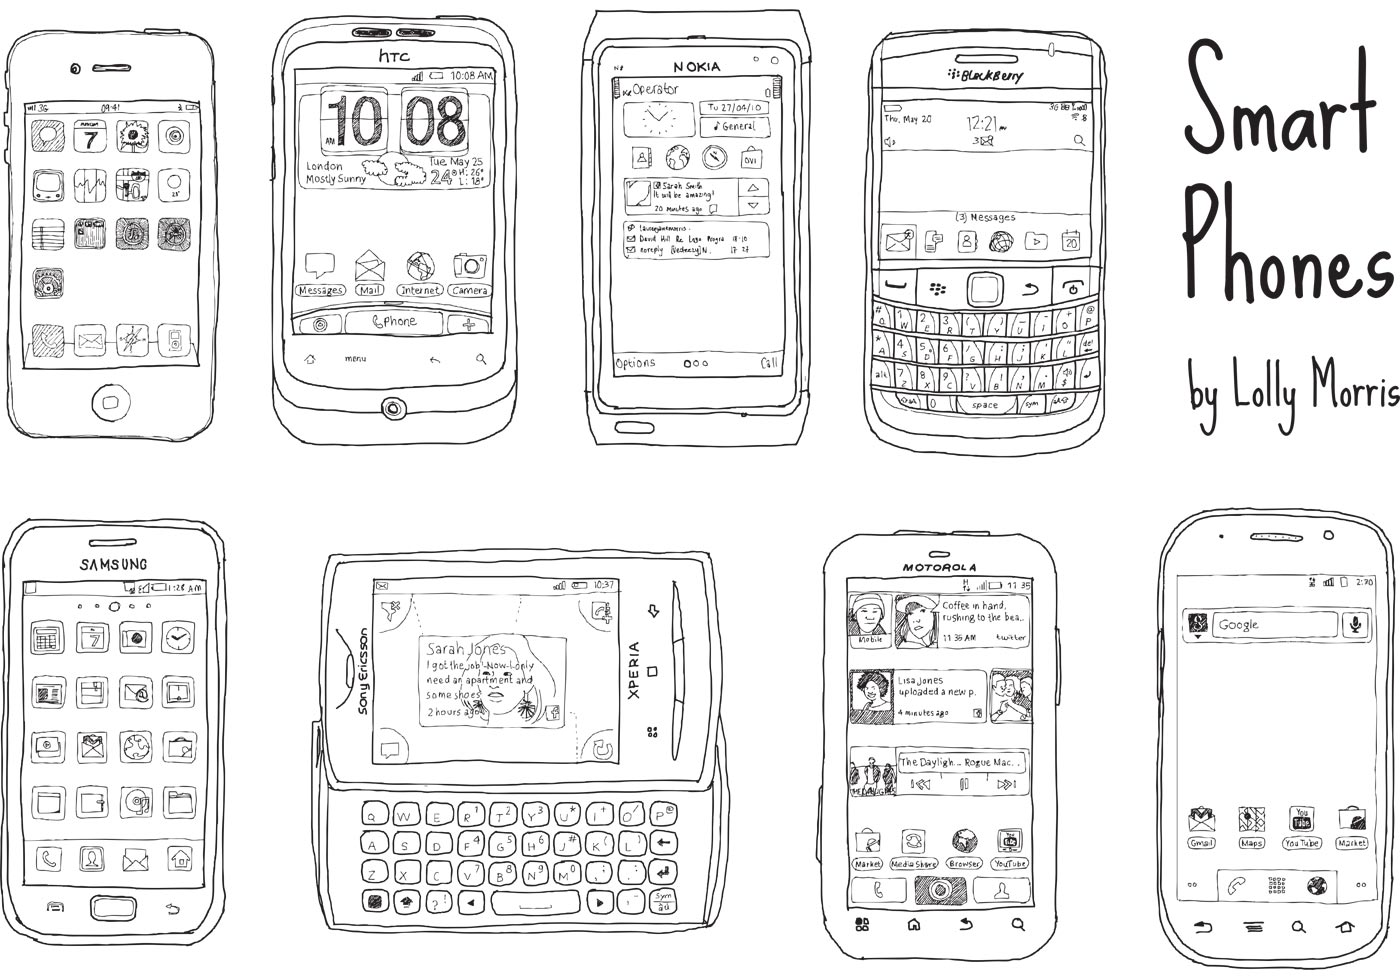 25809 Free Hand Drawn Smart Phone Vectors also 322424160861 together with 201330321502 in addition Drone Dog Walker also Product. on iphone 6 desk charger